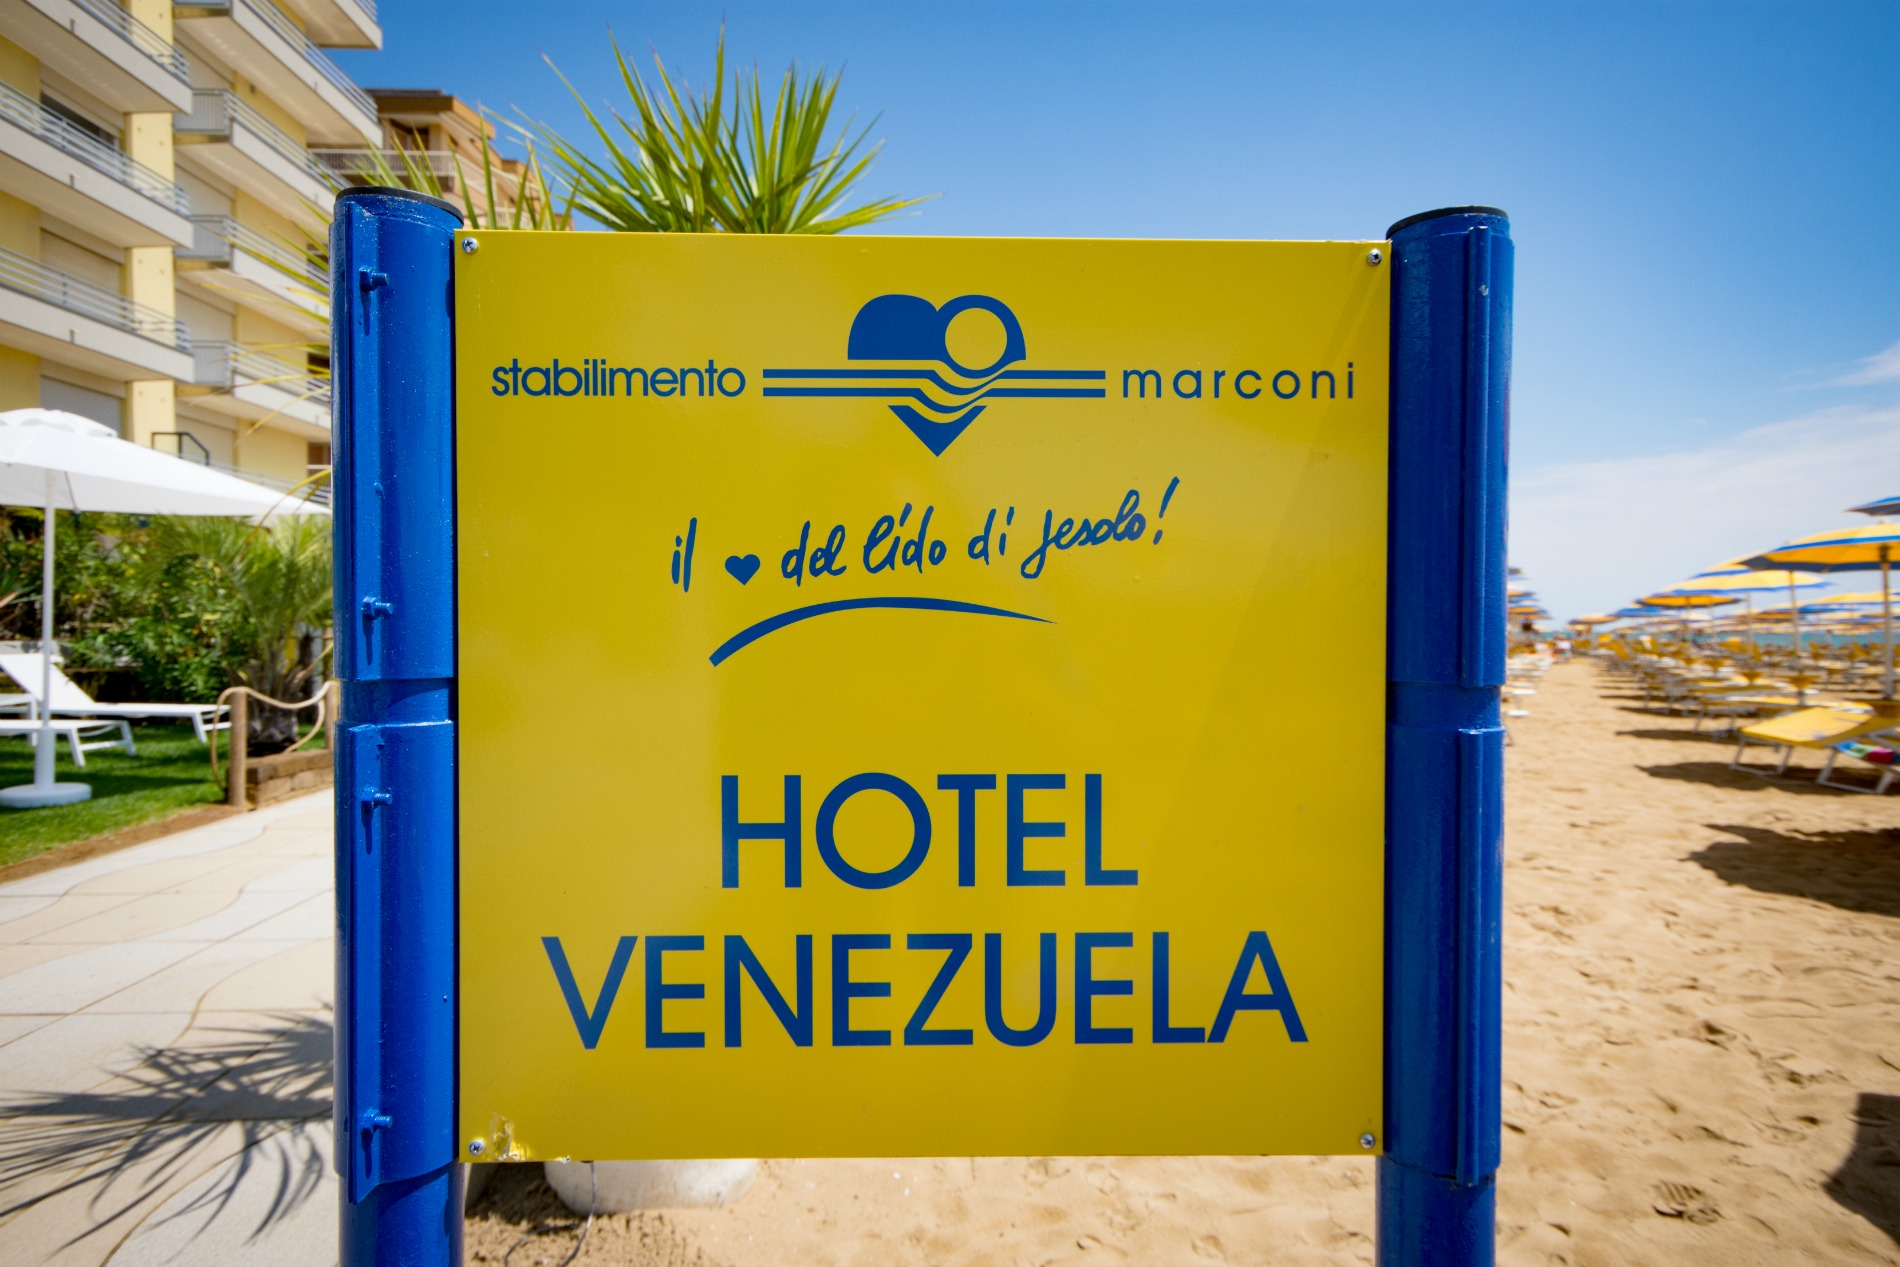 https://www.hotelvenezuela.it/wp-content/uploads/2016/02/spiaggia.jpeg